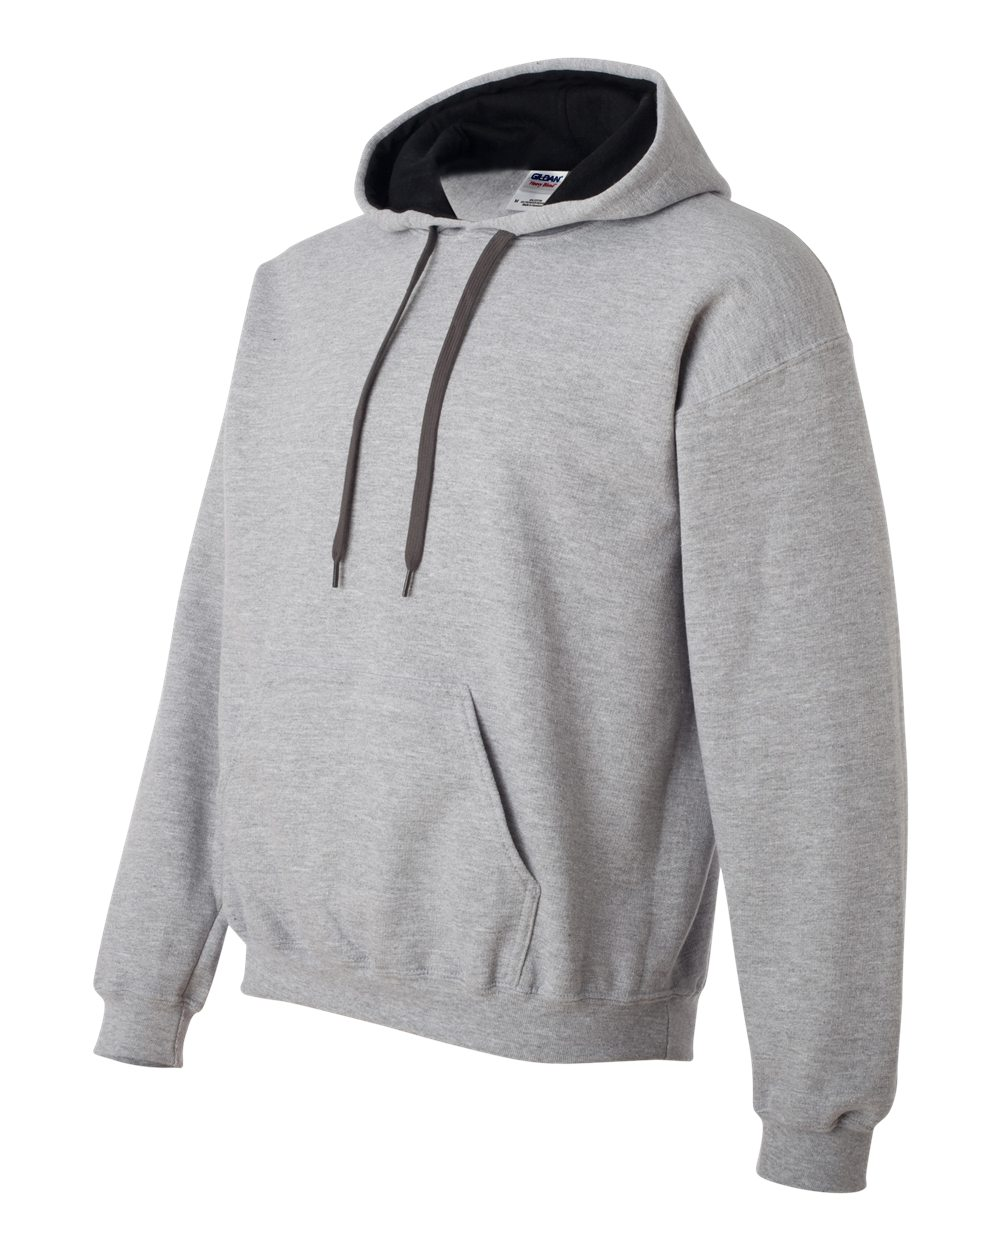 Gildan Heavy Blend Contrasted Hoodie GI185C00 Sport Grey - Black